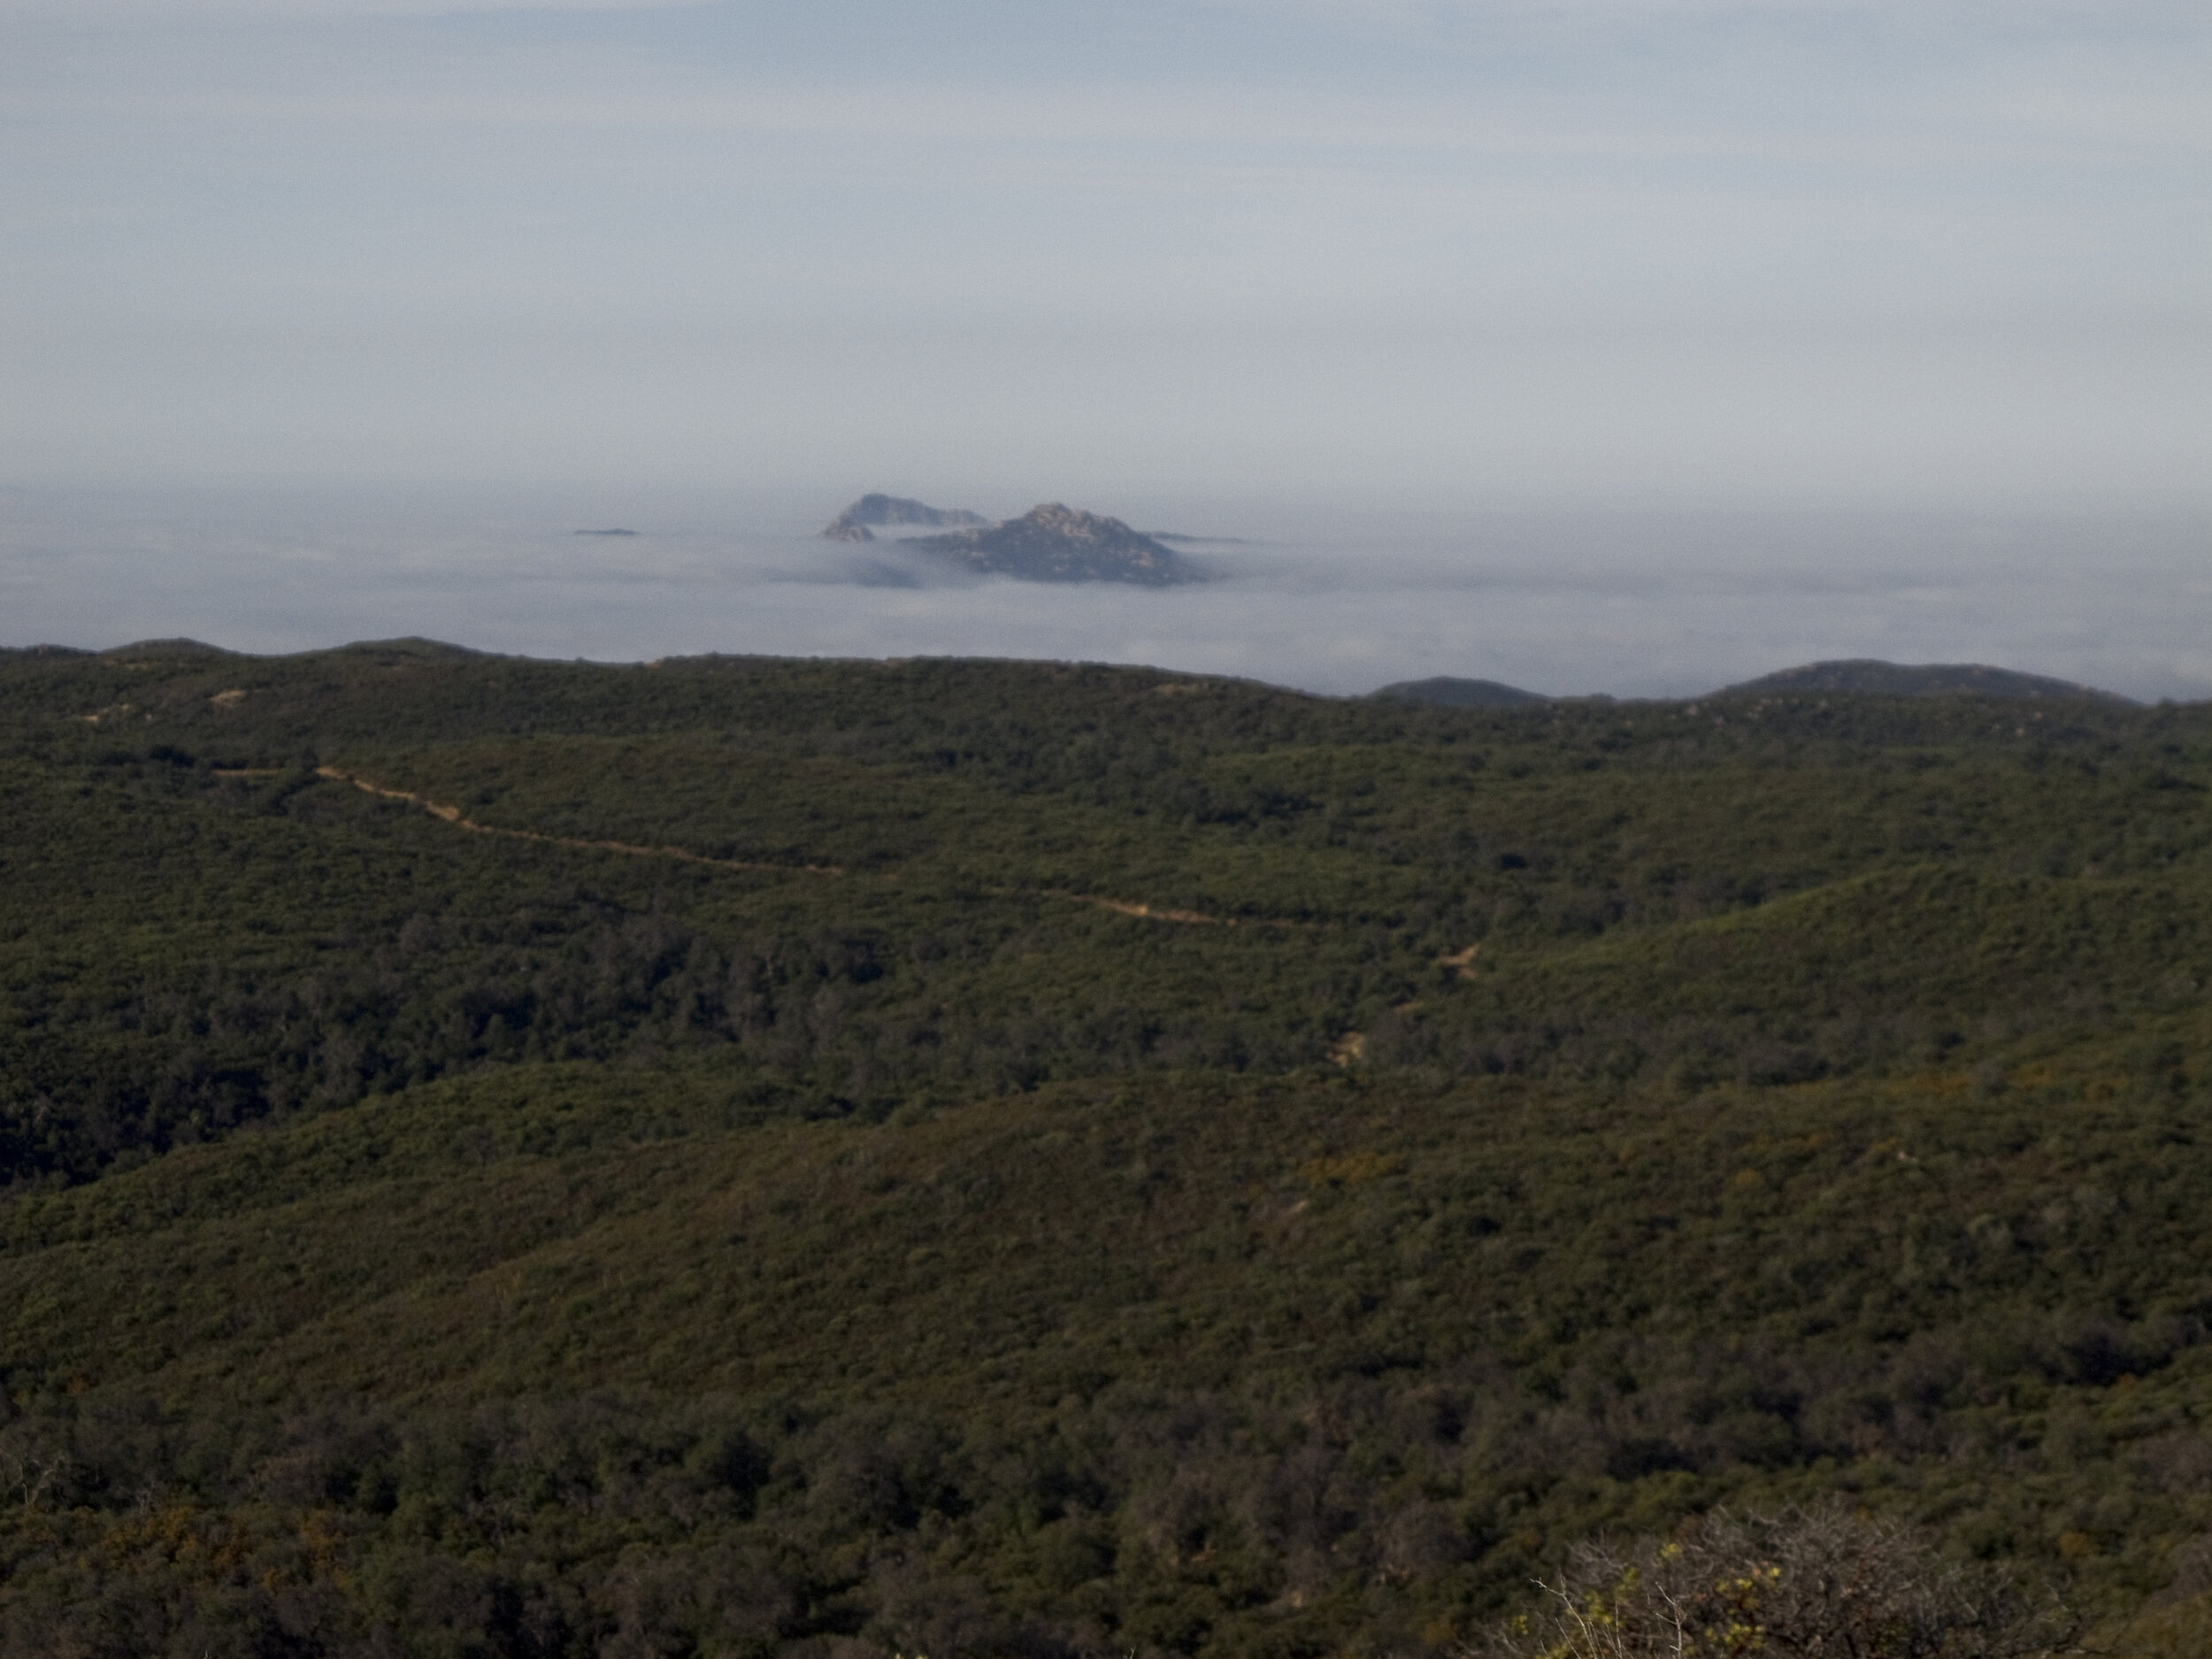 Corte Madera and Los Pinos Mountain in the distance